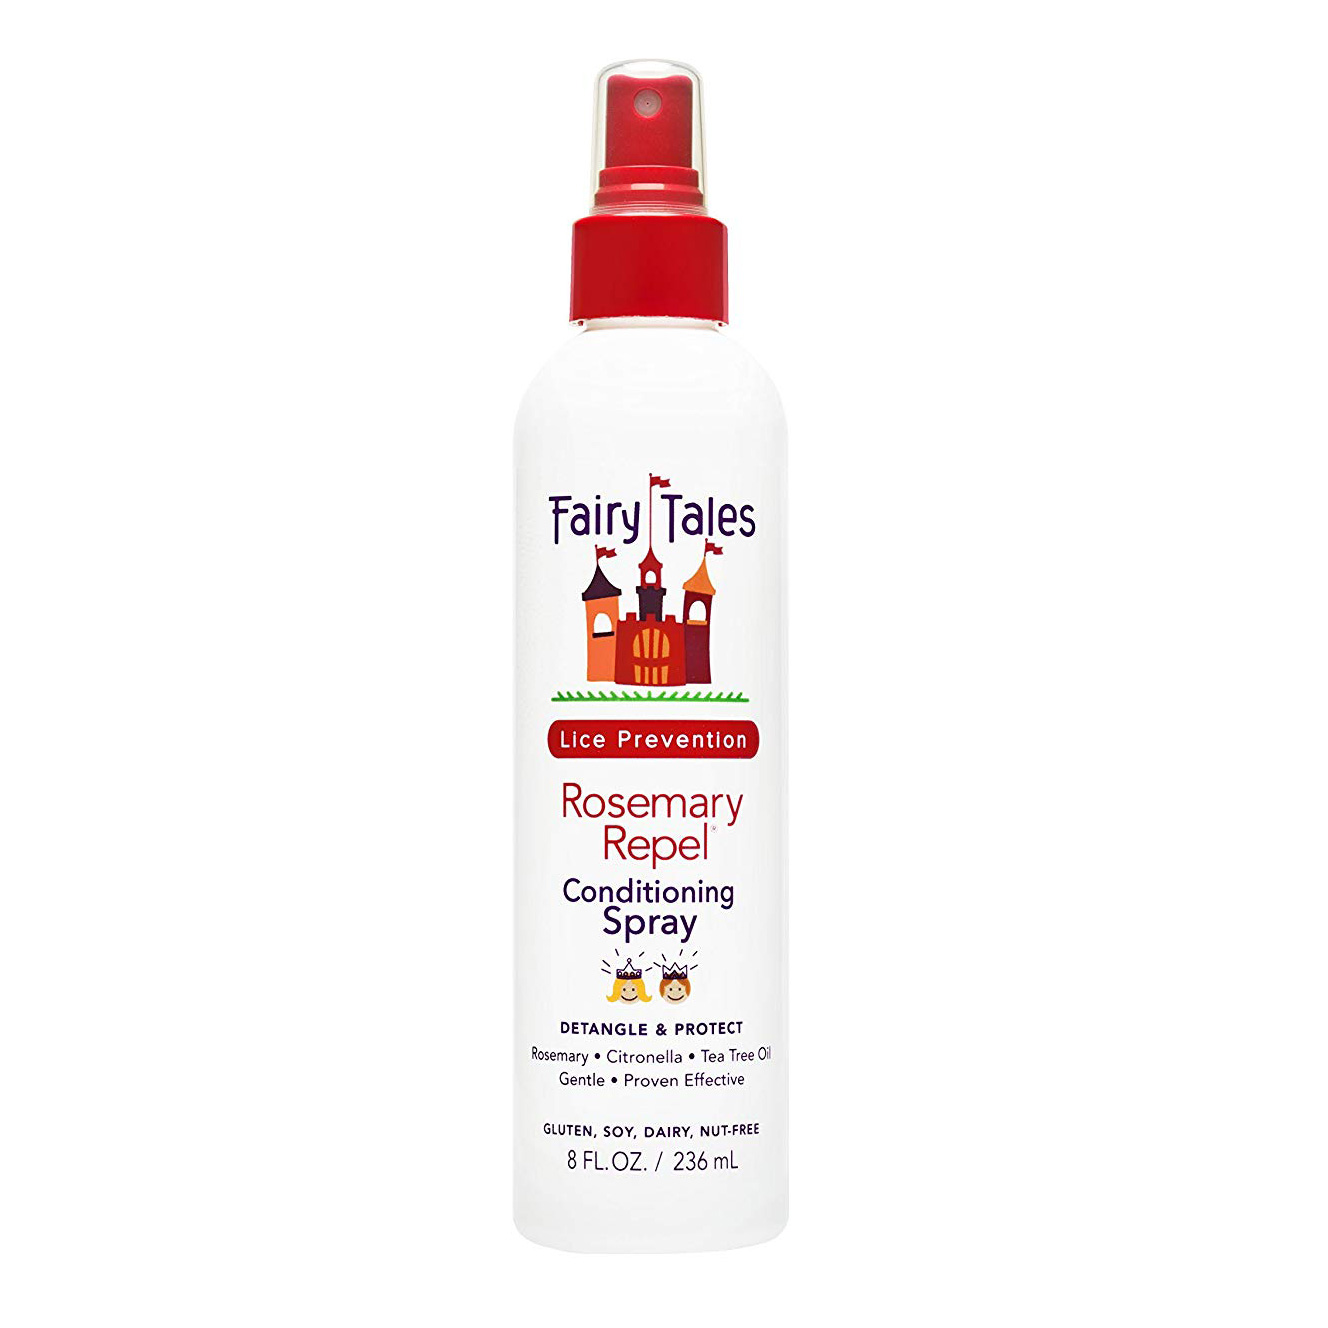 Fairy Tales Rosemary Repel Daily Kid Conditioning Spray for Lice Prevention